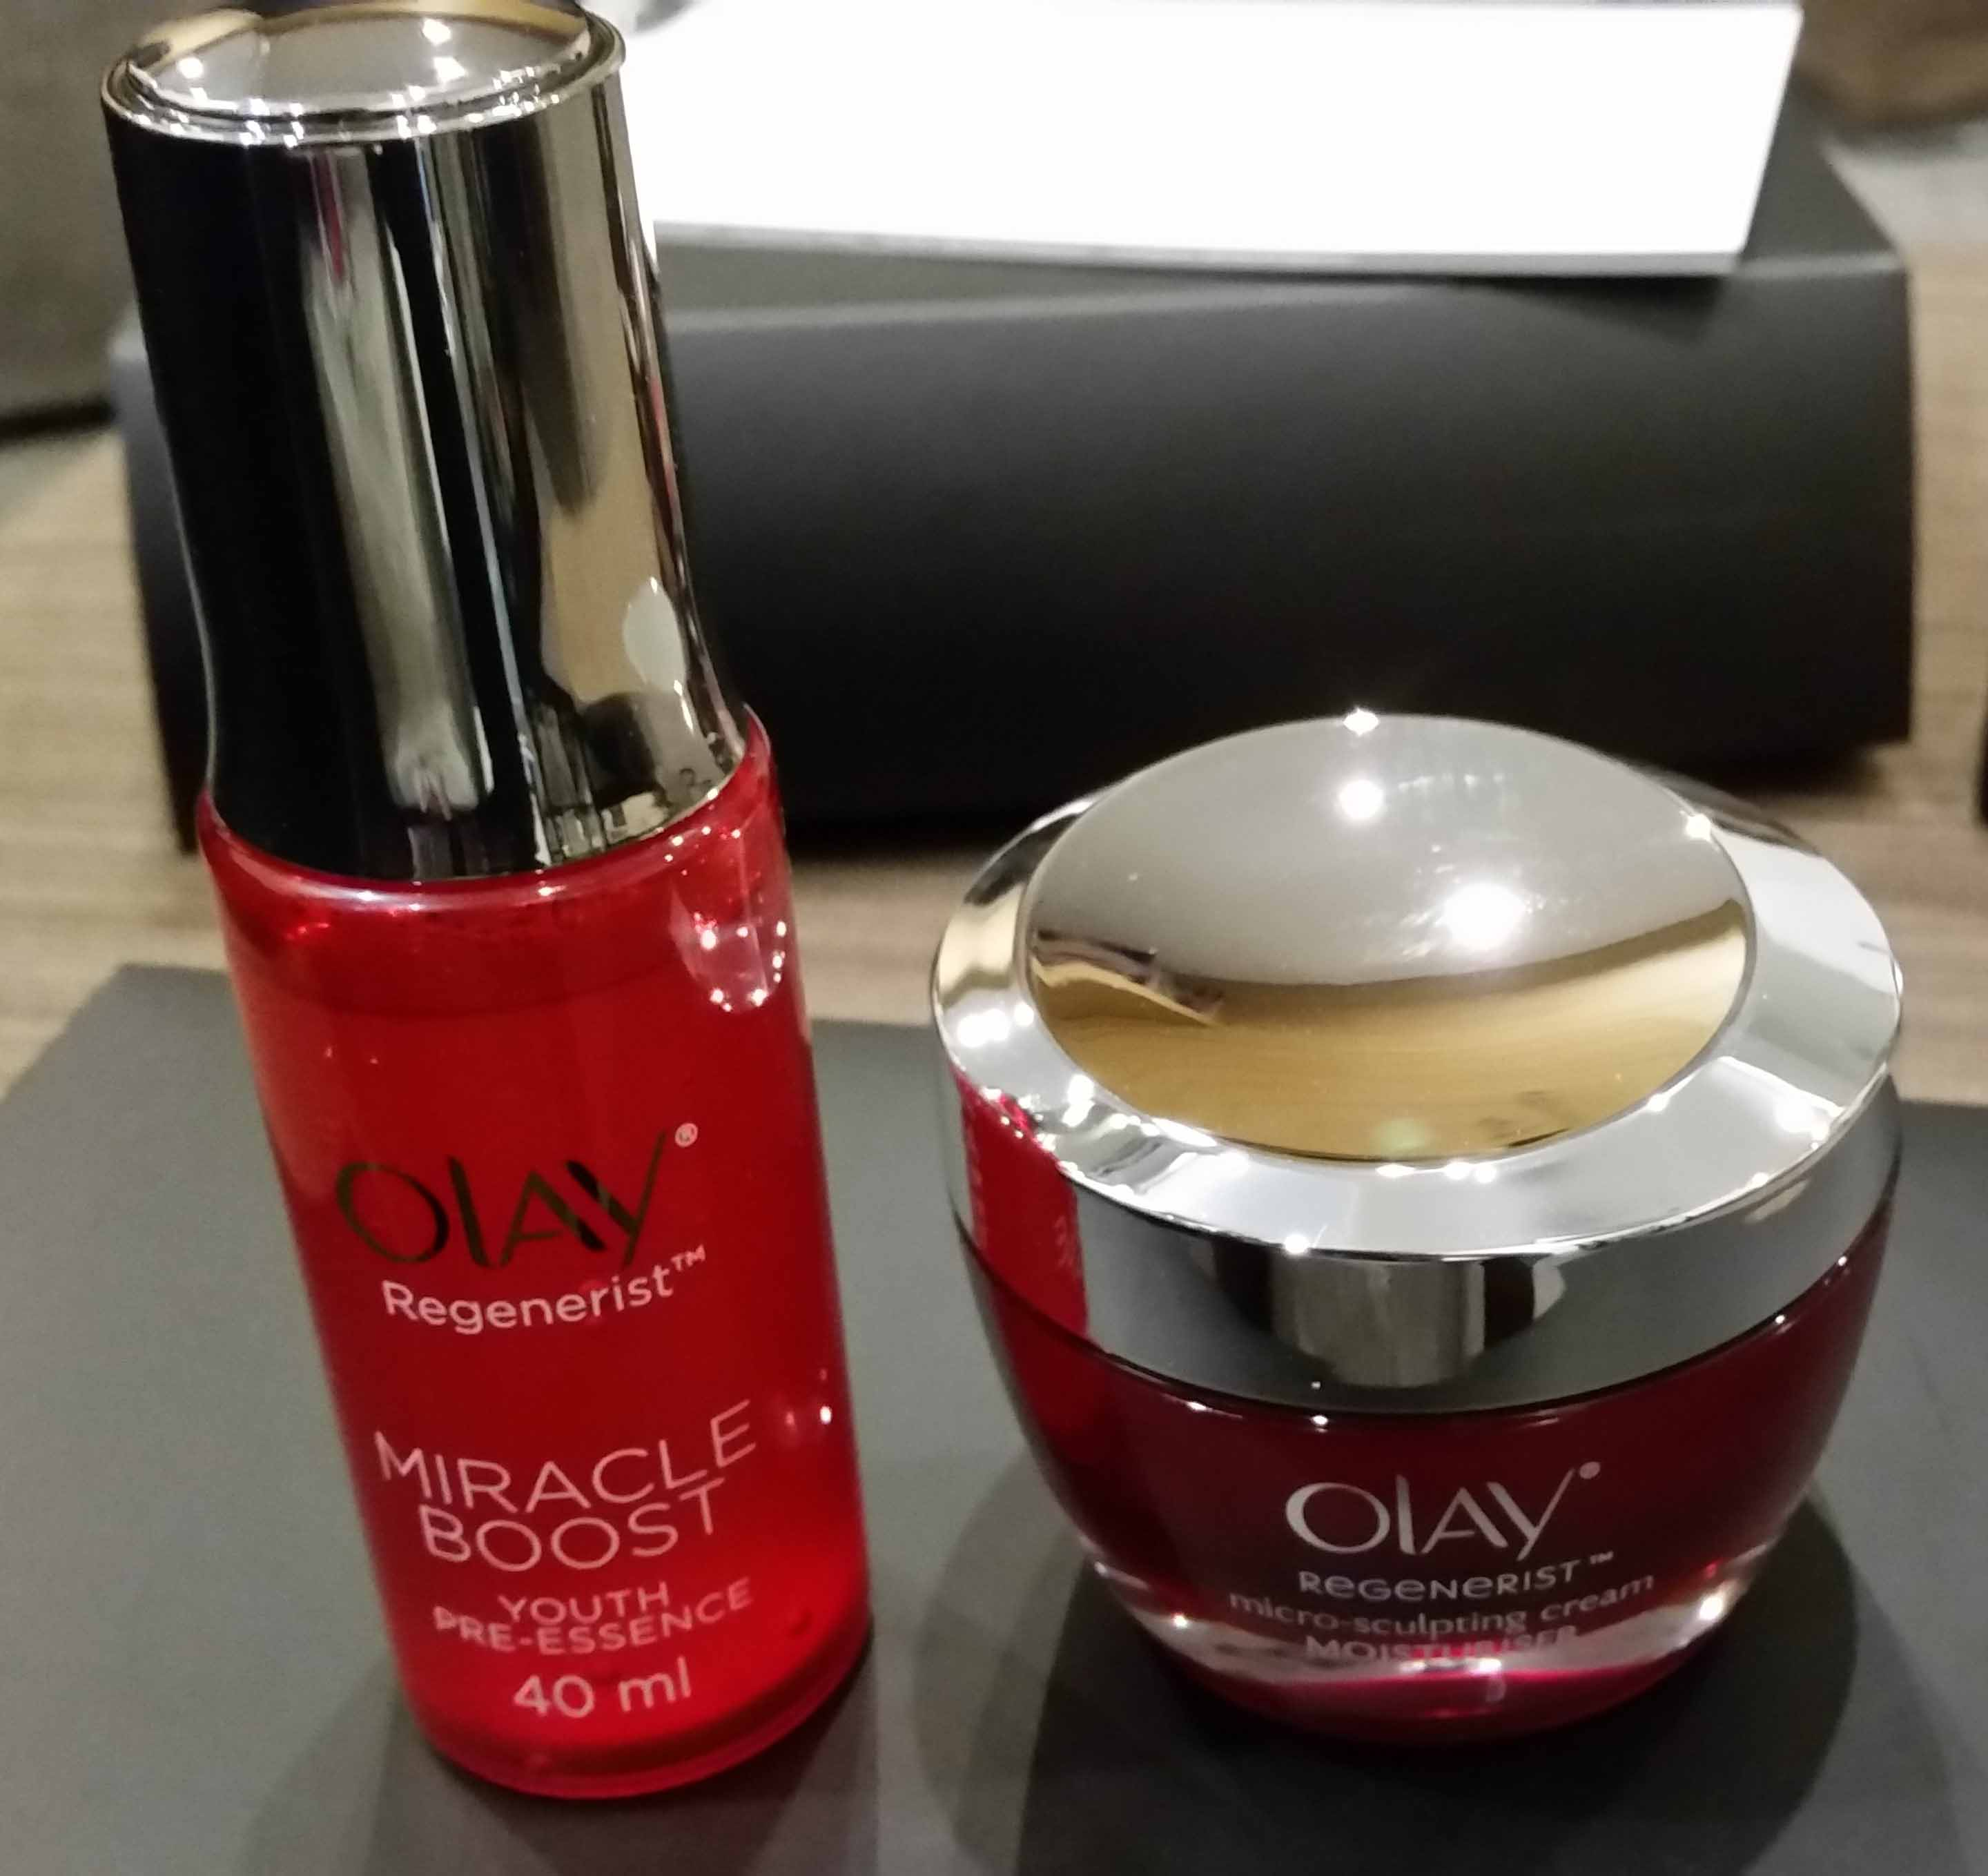 Olay Regenerist: Miracle Booster & Micro-sculpting Cream